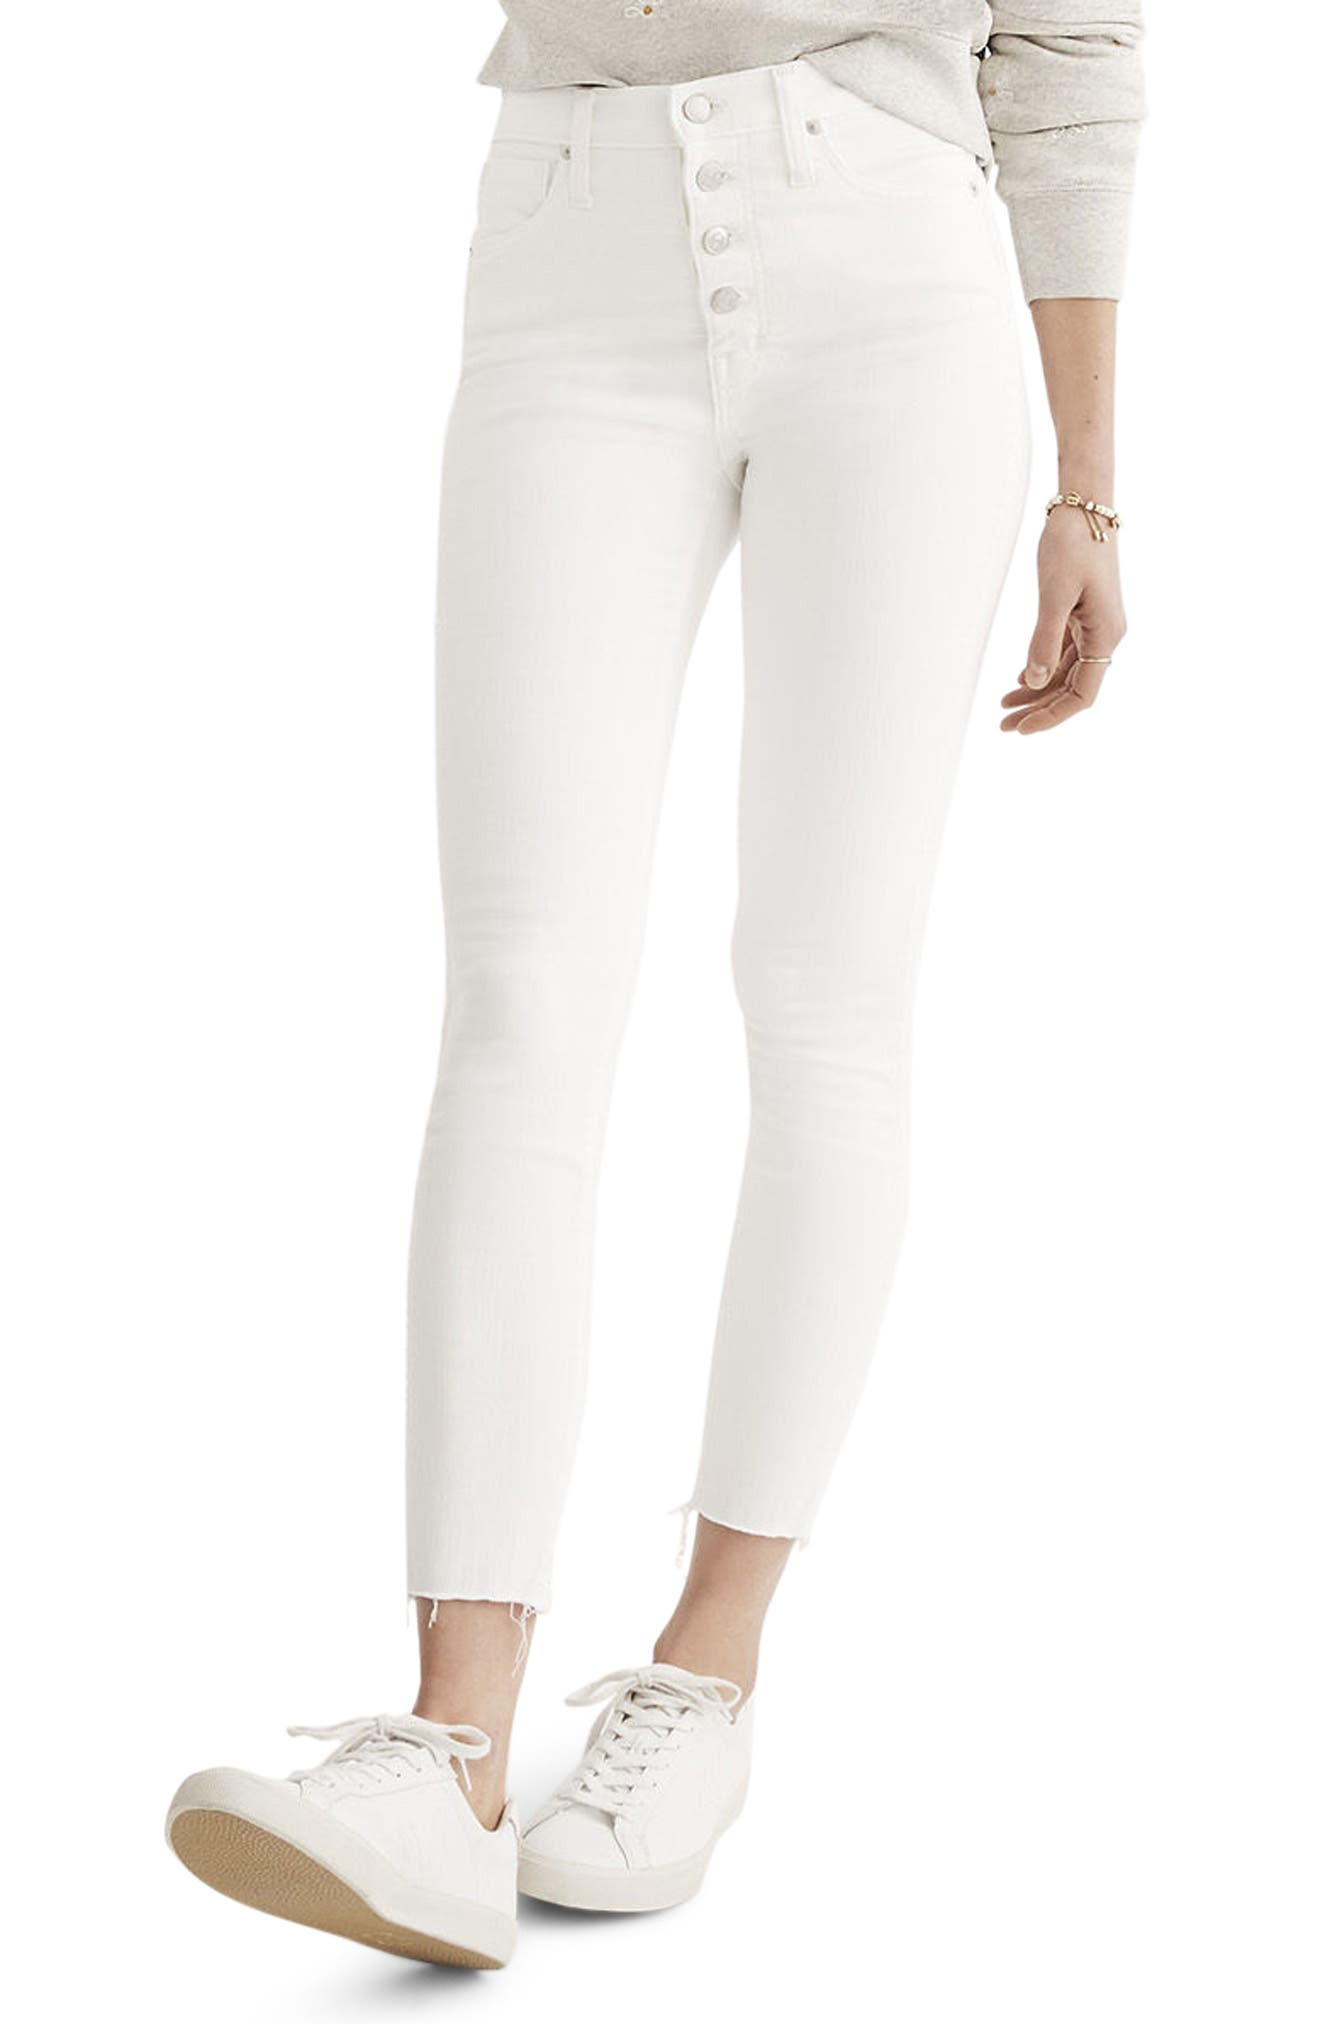 Madewell 10-Inch Button High Waist Crop Skinny Jeans (Pure White)